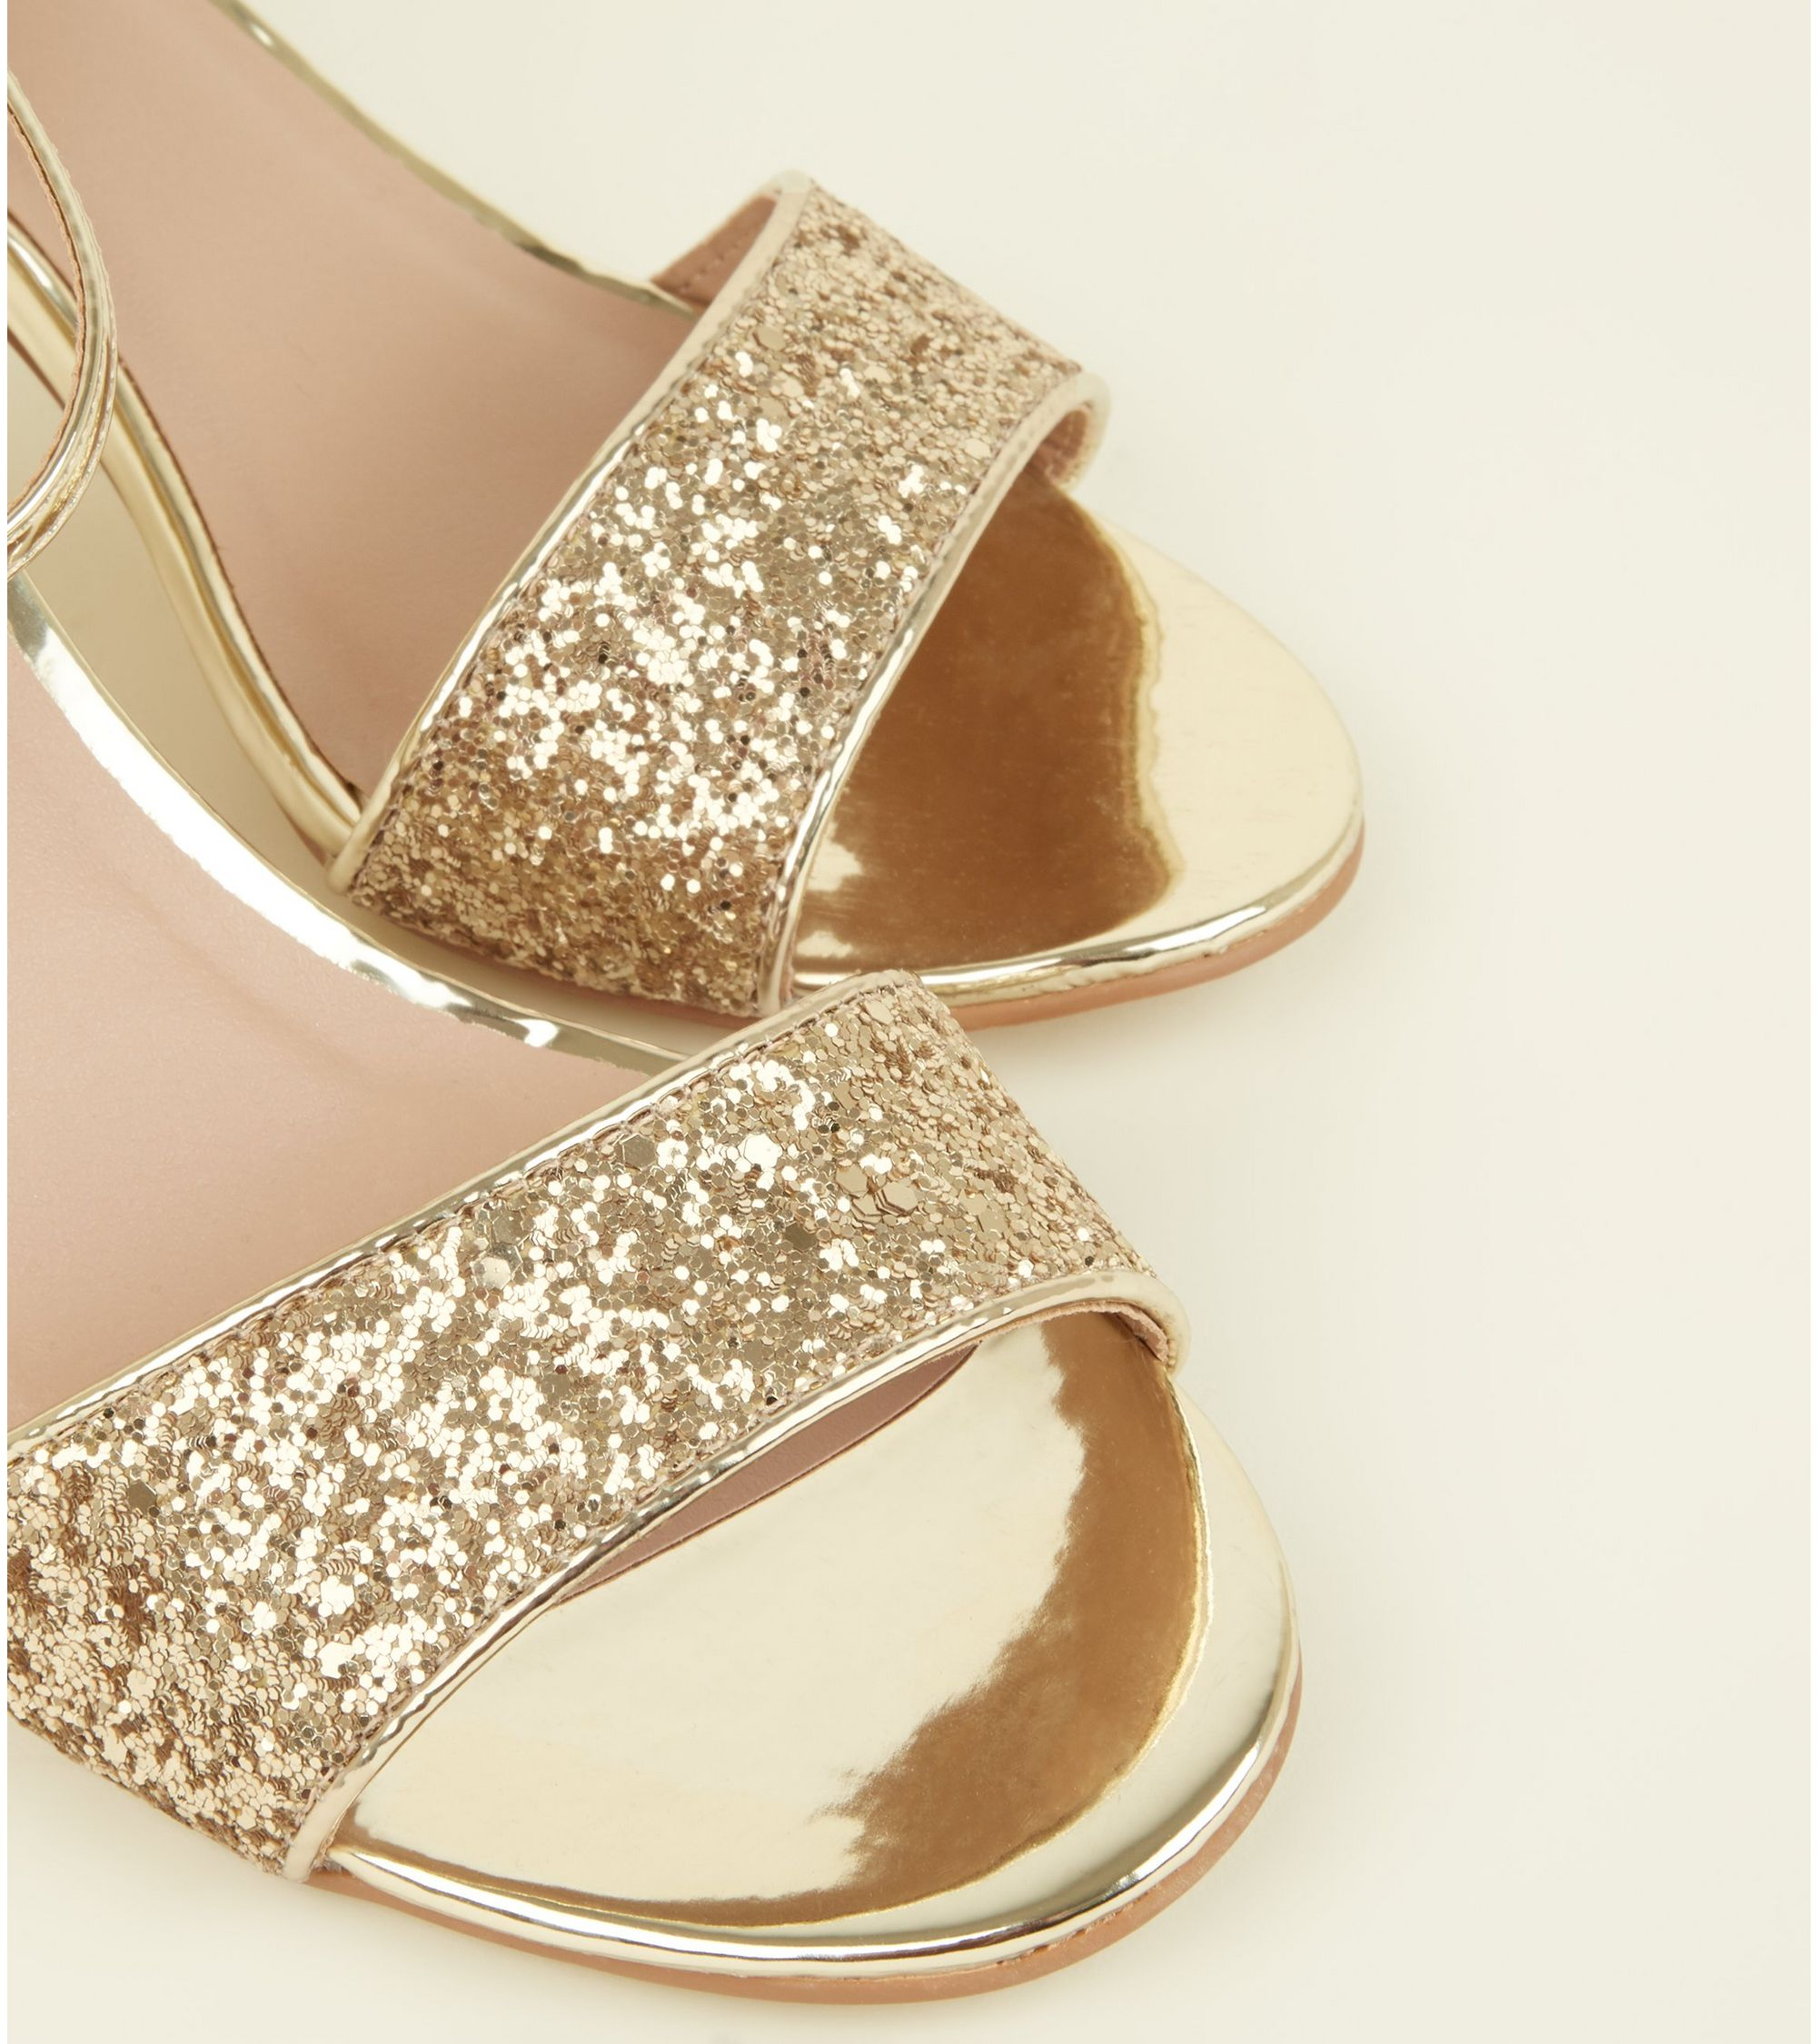 d9f554ea853 New Look Wide Fit Gold Glitter Cone Heels At 22 99 Love The Brands